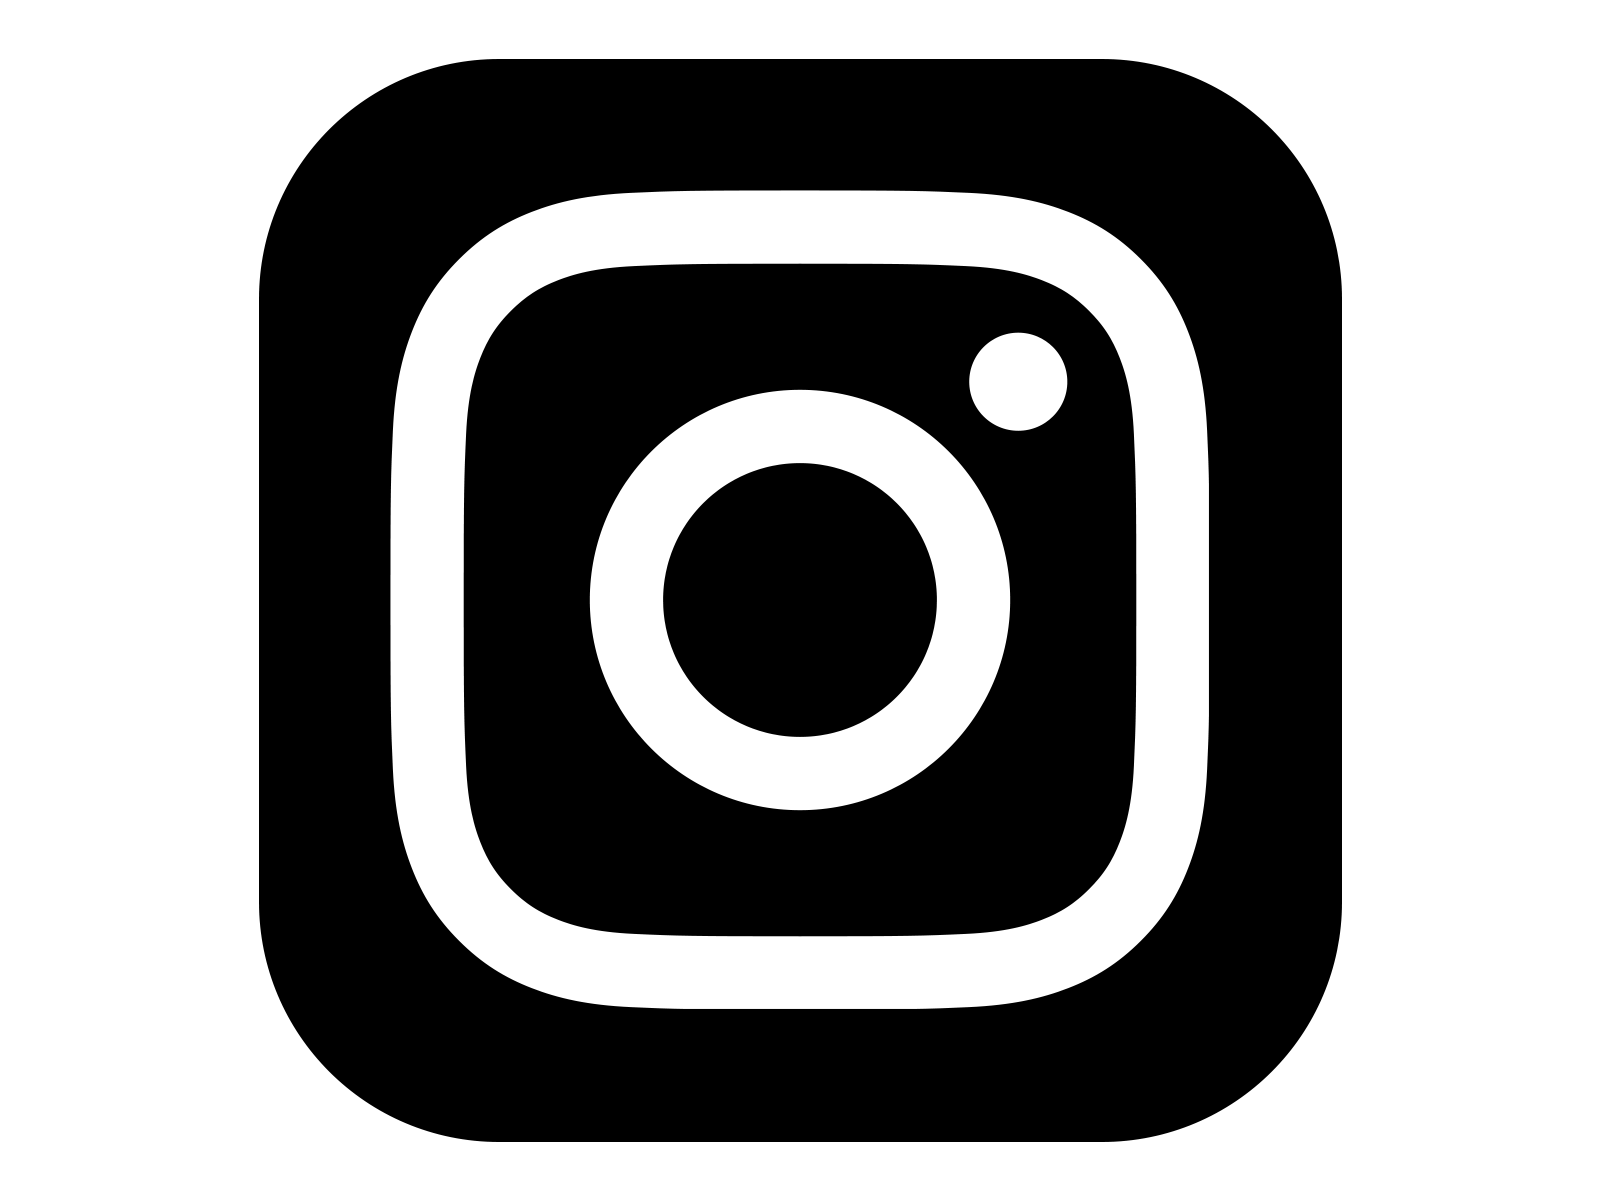 Instagram clipart black and white svg library download Instagram Logo - Freebie Supply svg library download